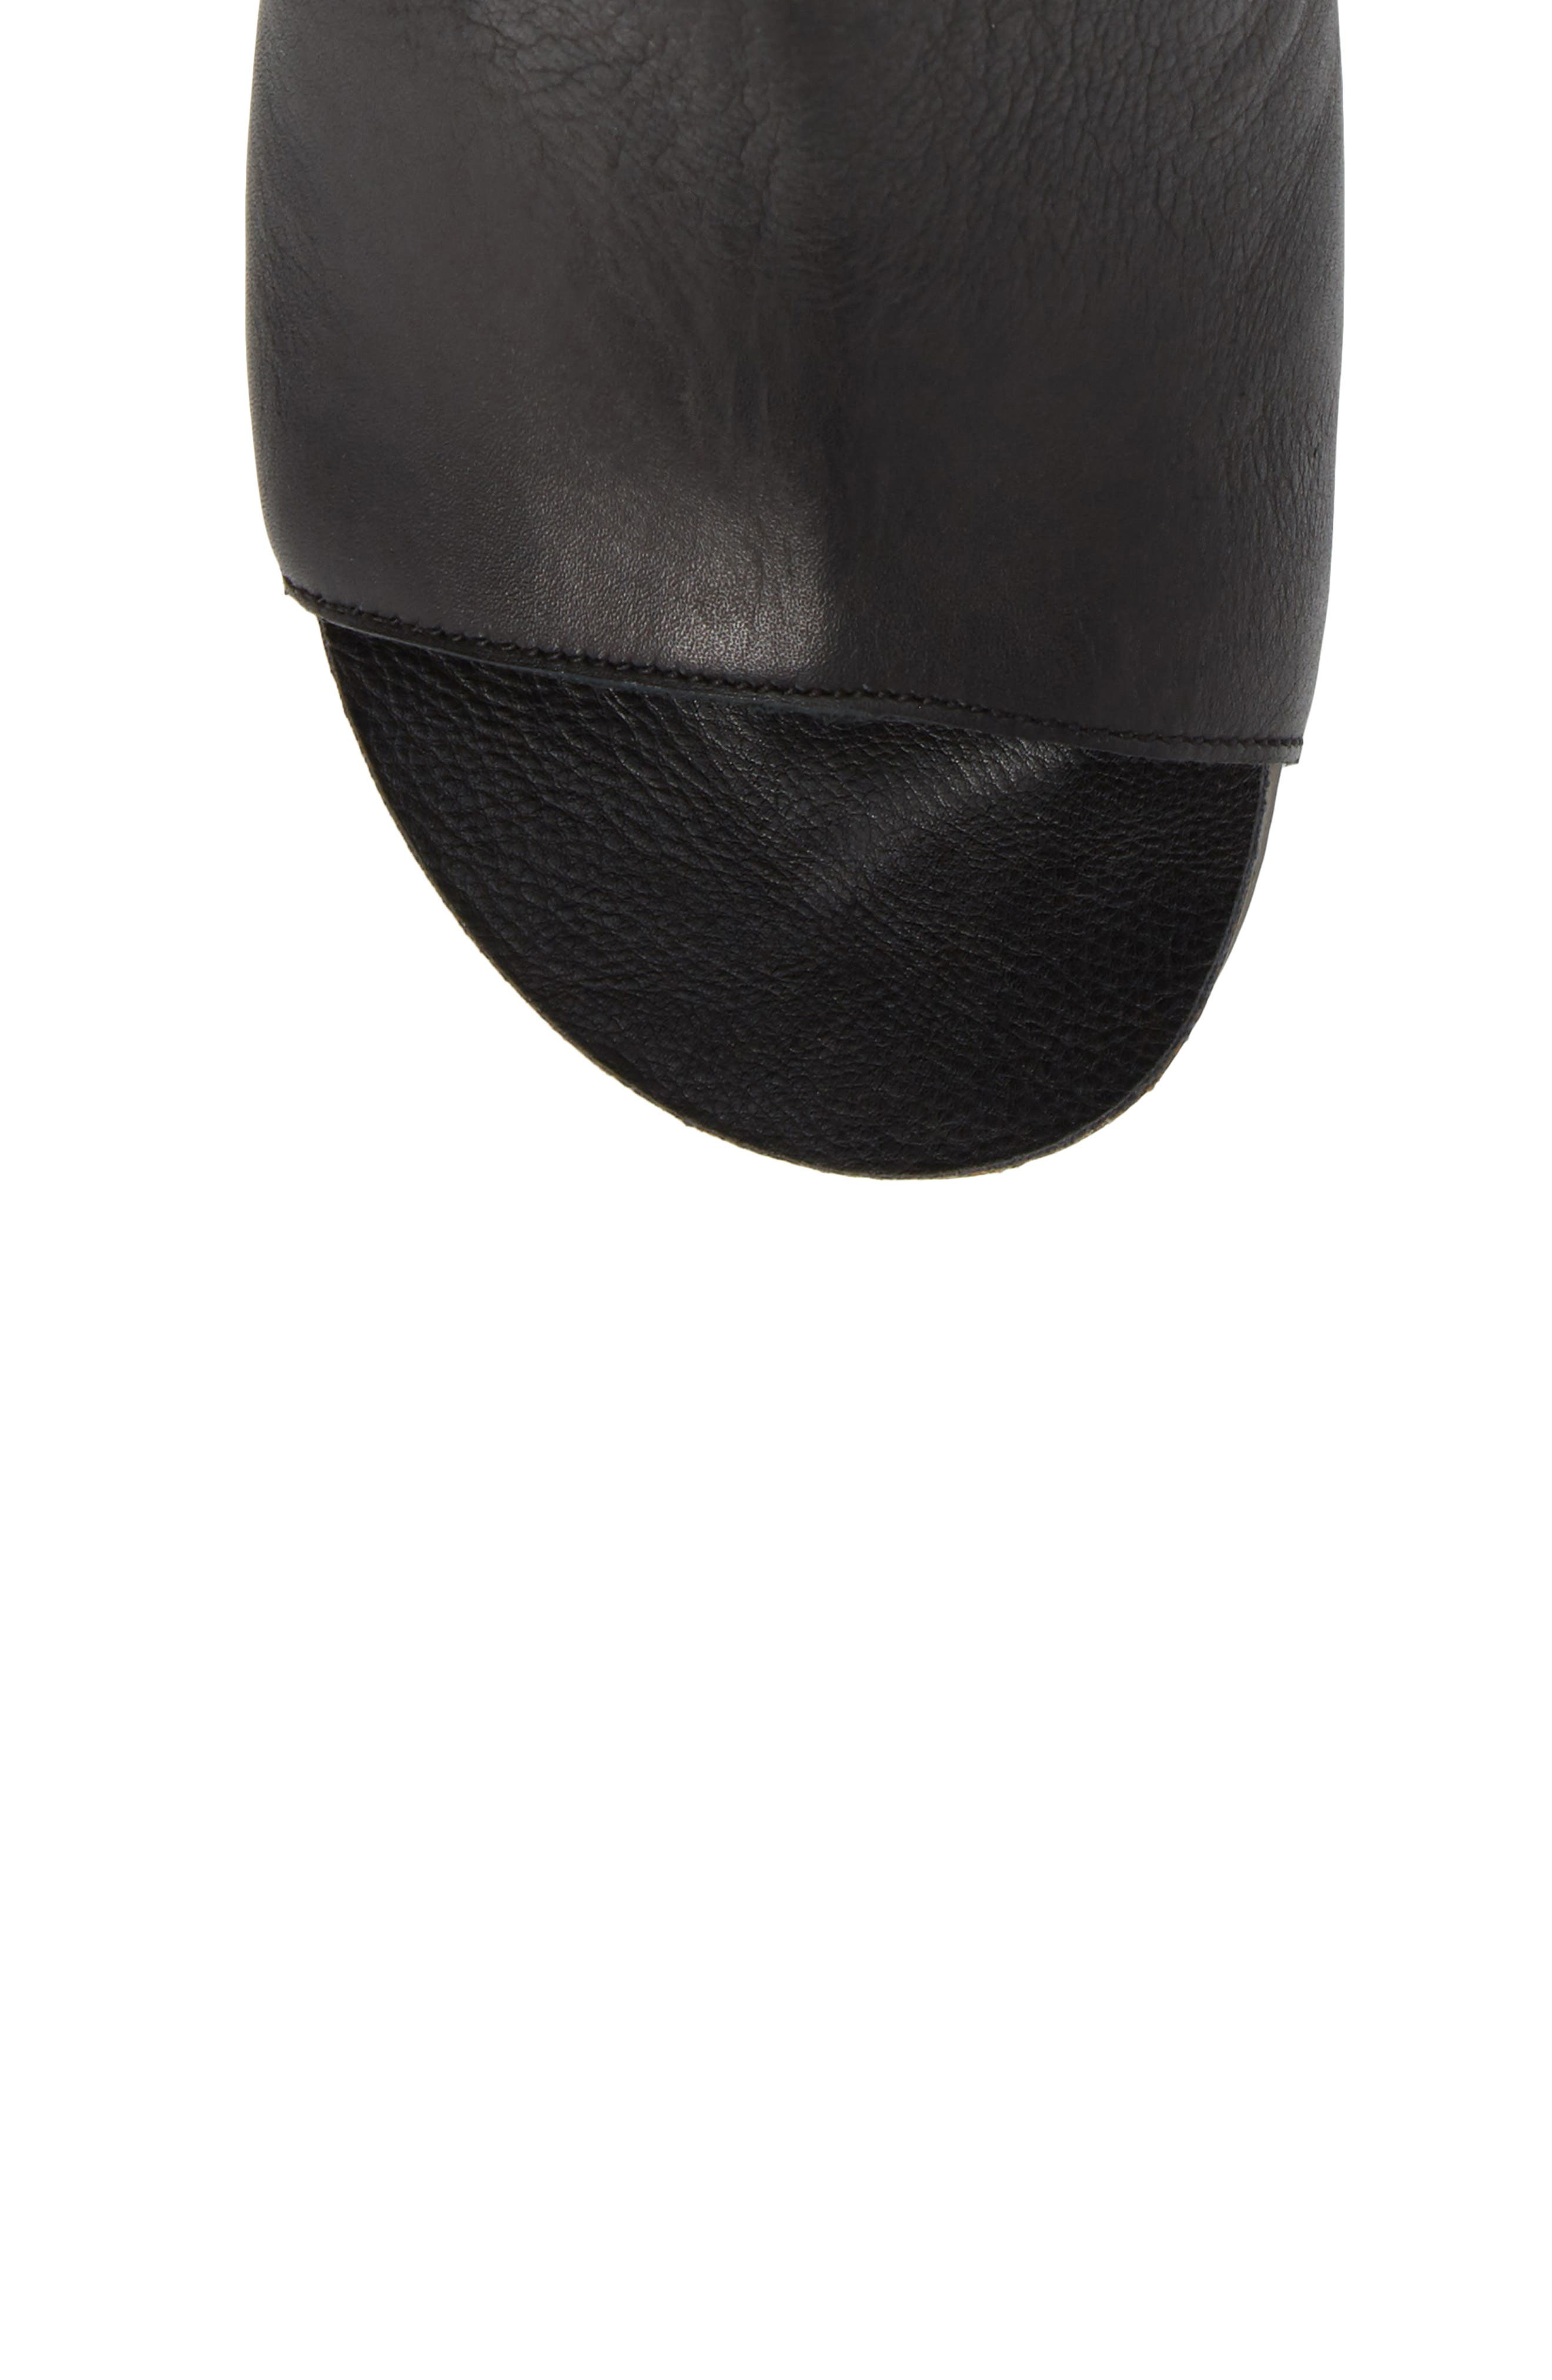 Open Toe Bootie,                             Alternate thumbnail 5, color,                             Black Leather